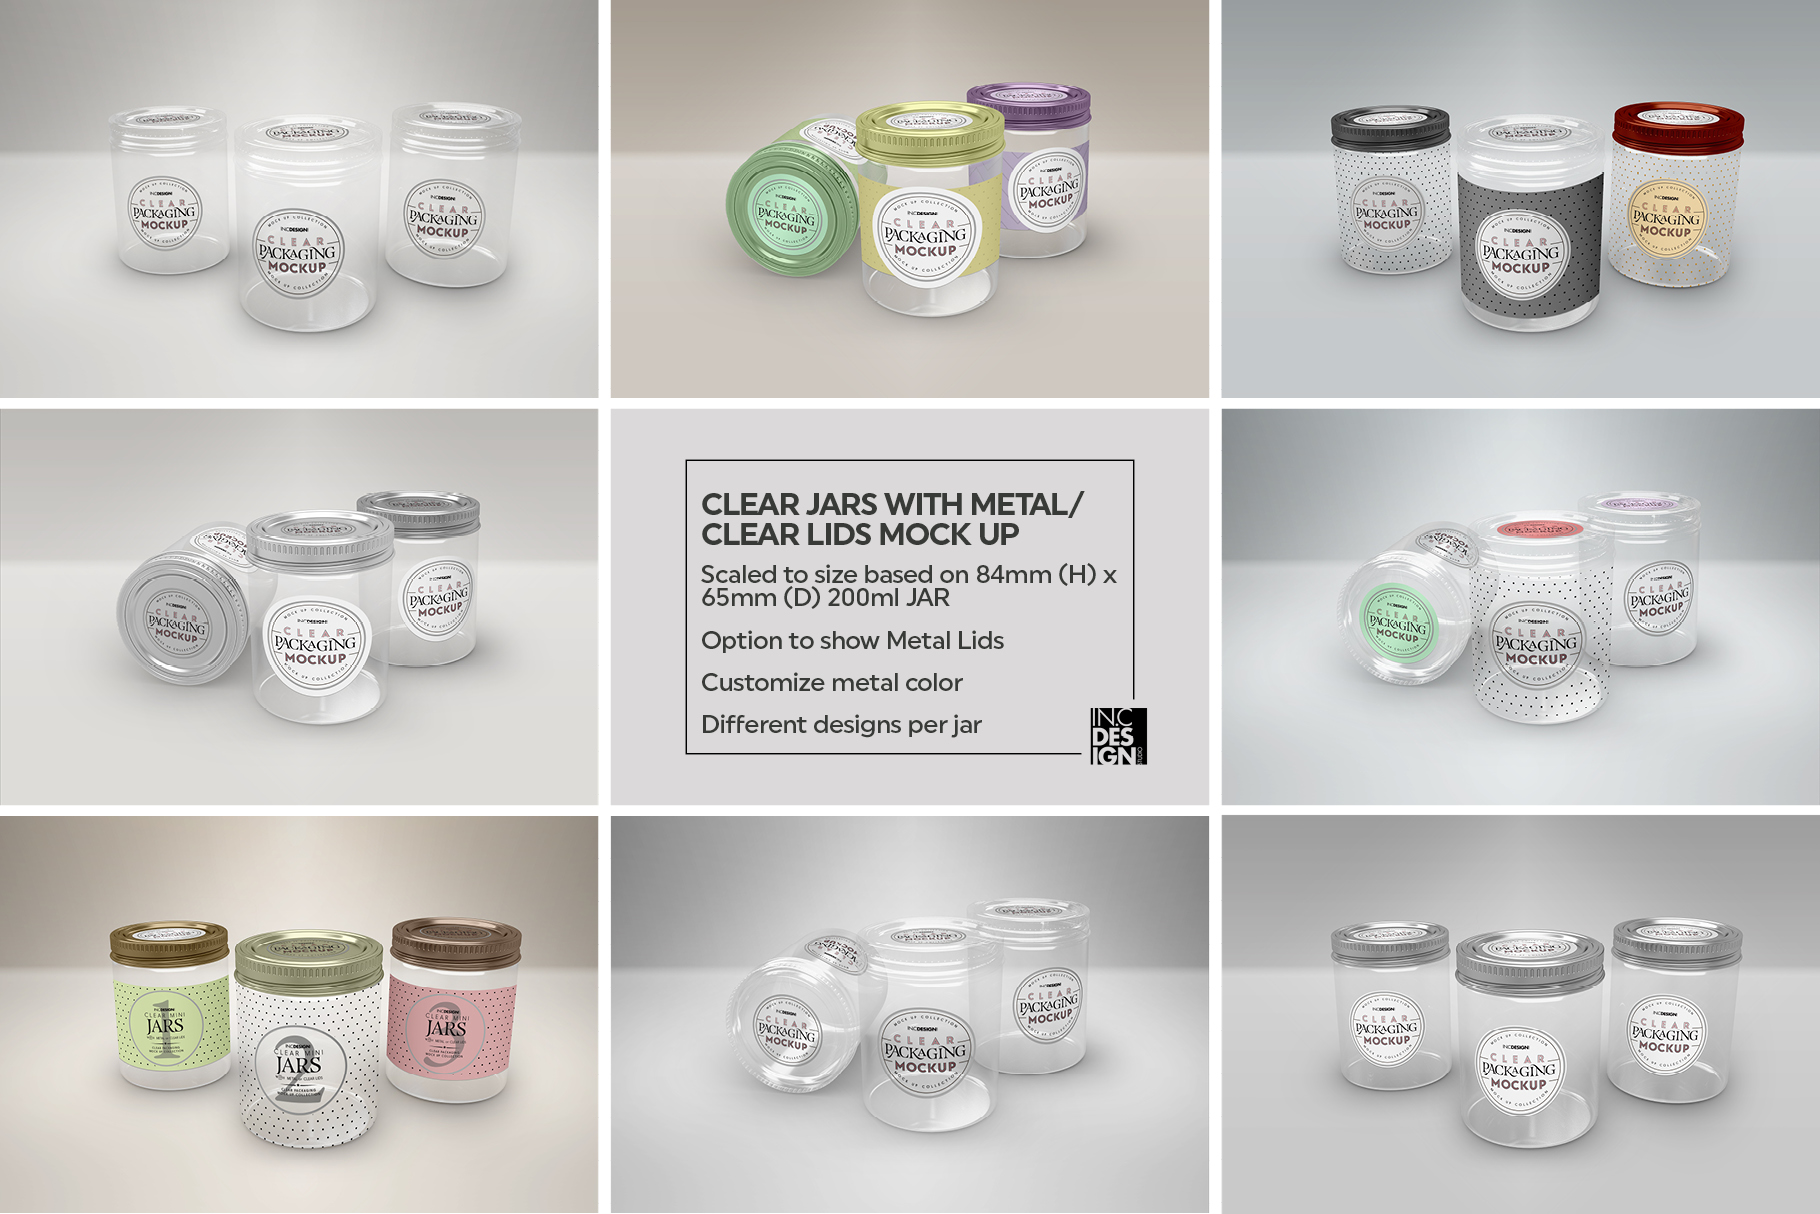 Clear Jars with Metal /Clear Lids Mockup example image 3